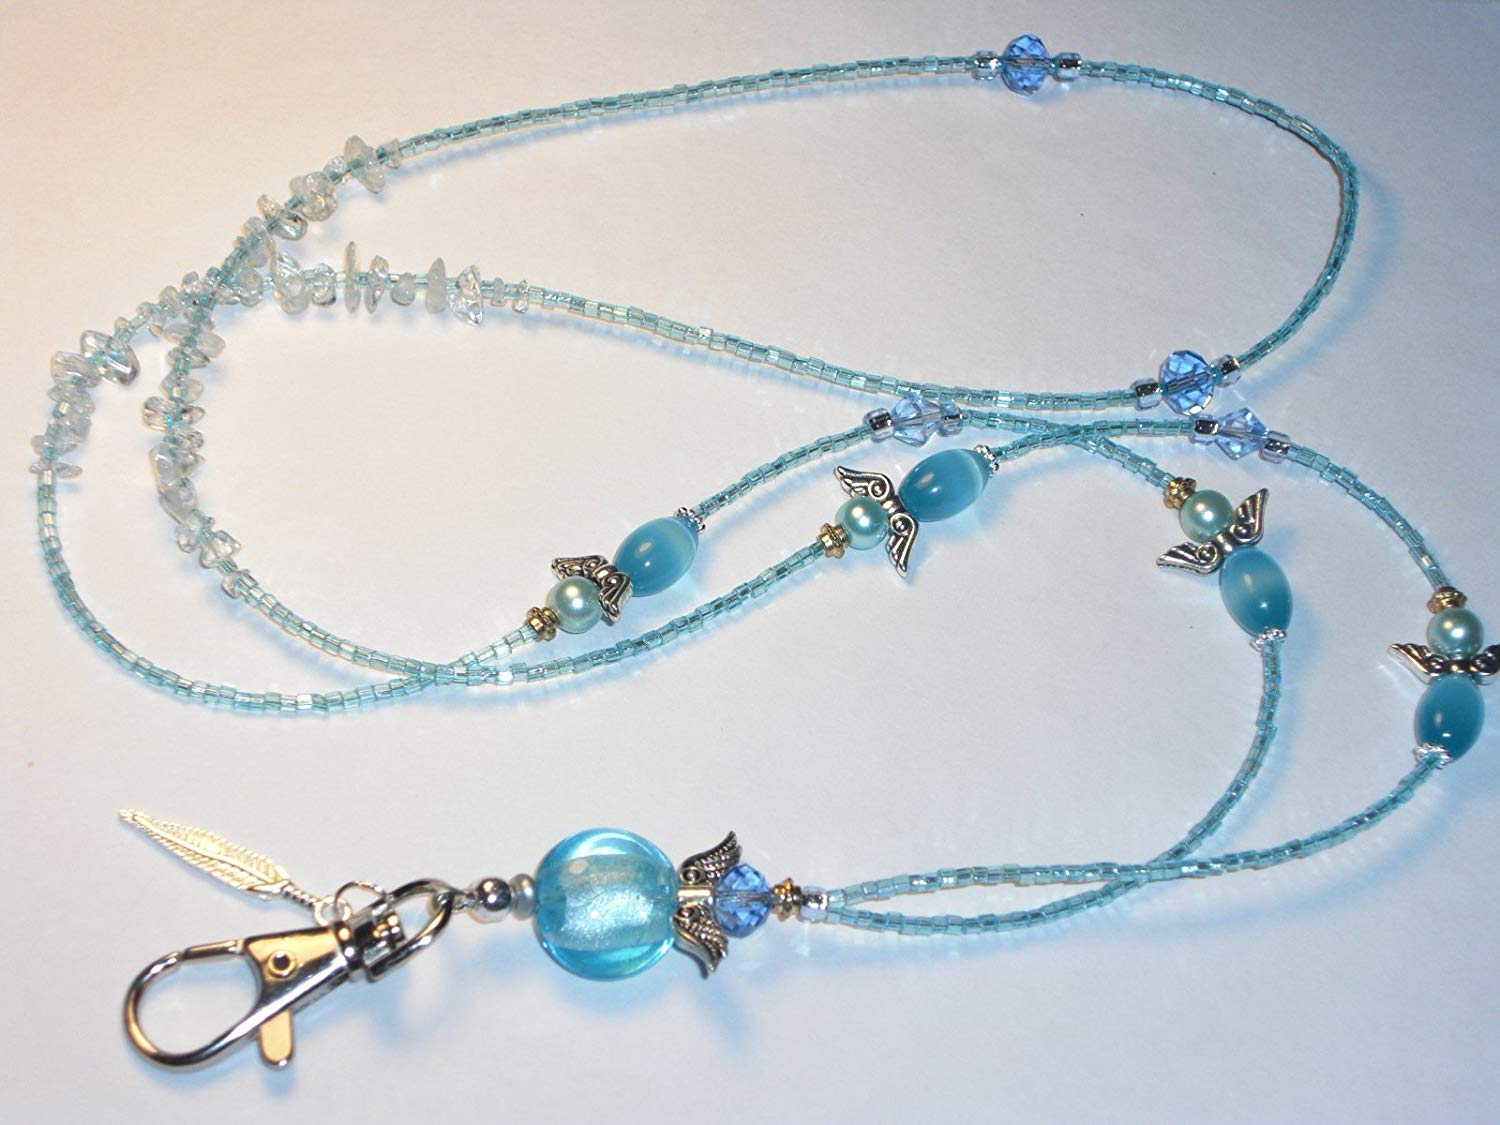 Blue Beaded Lanyard Guardian Angels ID Badge Key Chain Clip Choose length 32-38 inches